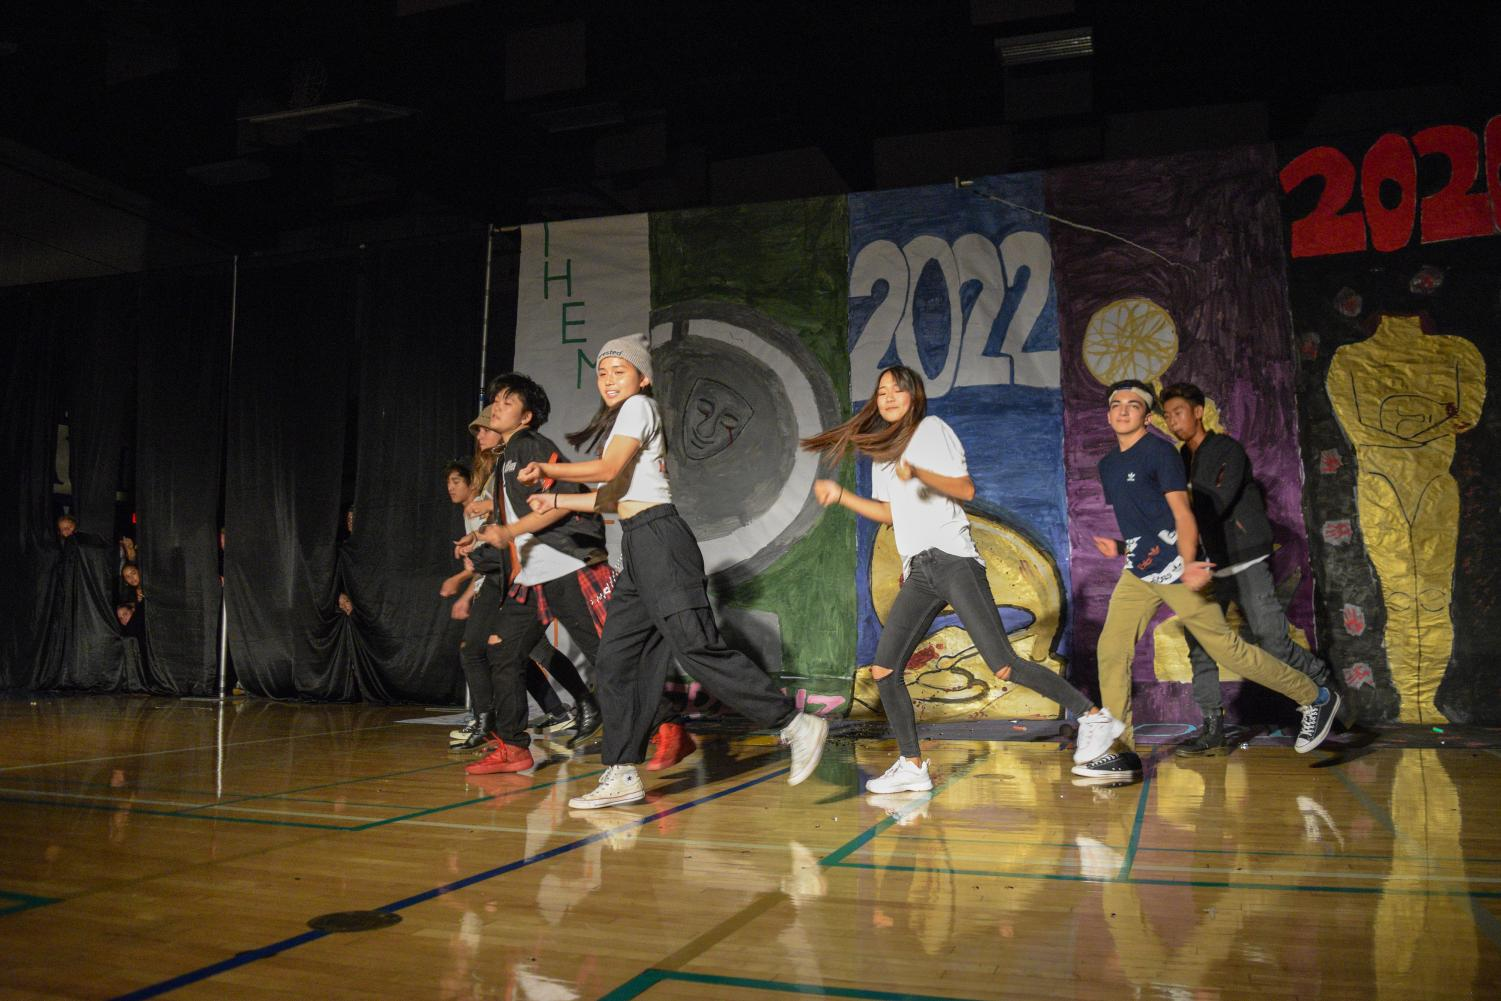 A group of sophomores channeled their inner BTS and presented a dance during the performance.